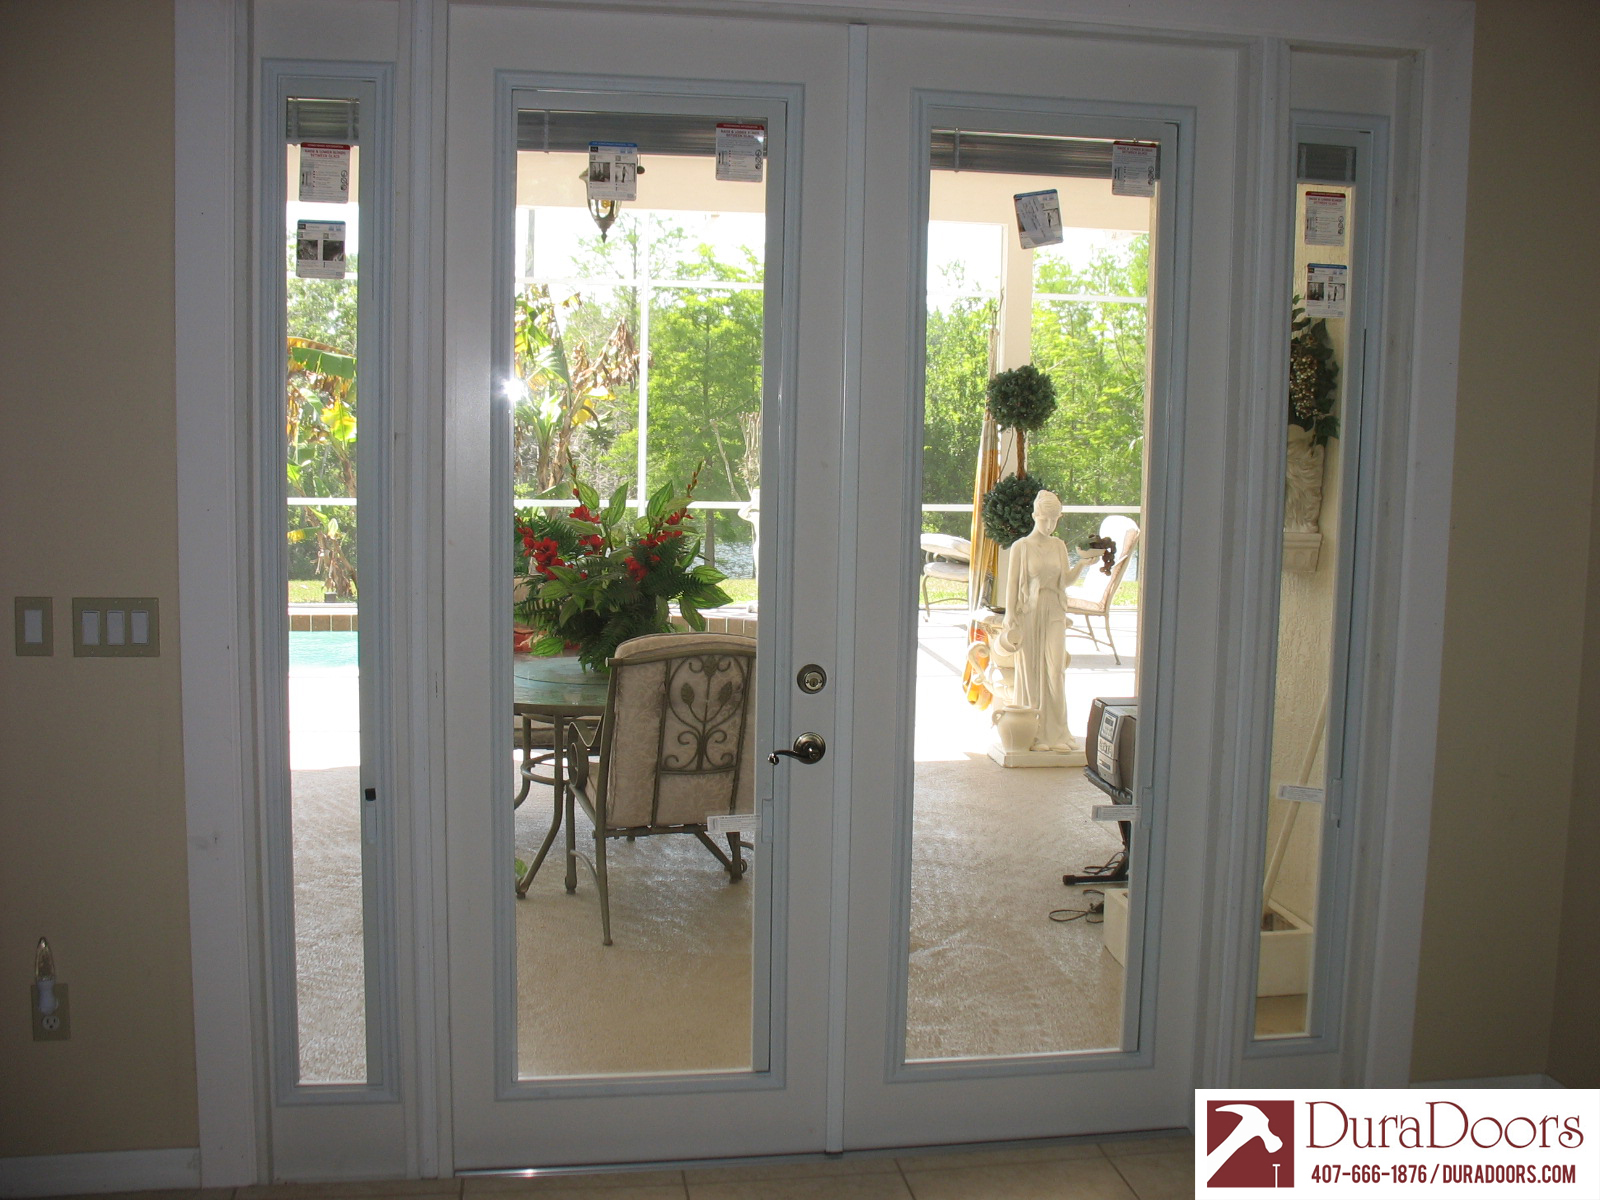 Divine This Customer Had Us Replace Ir Sliding Glass Doors Withfrench Y Selected Plastpro French Doors Odl French Doors Odl Enclosed Blinds Duradoors houzz-03 French Doors With Blinds